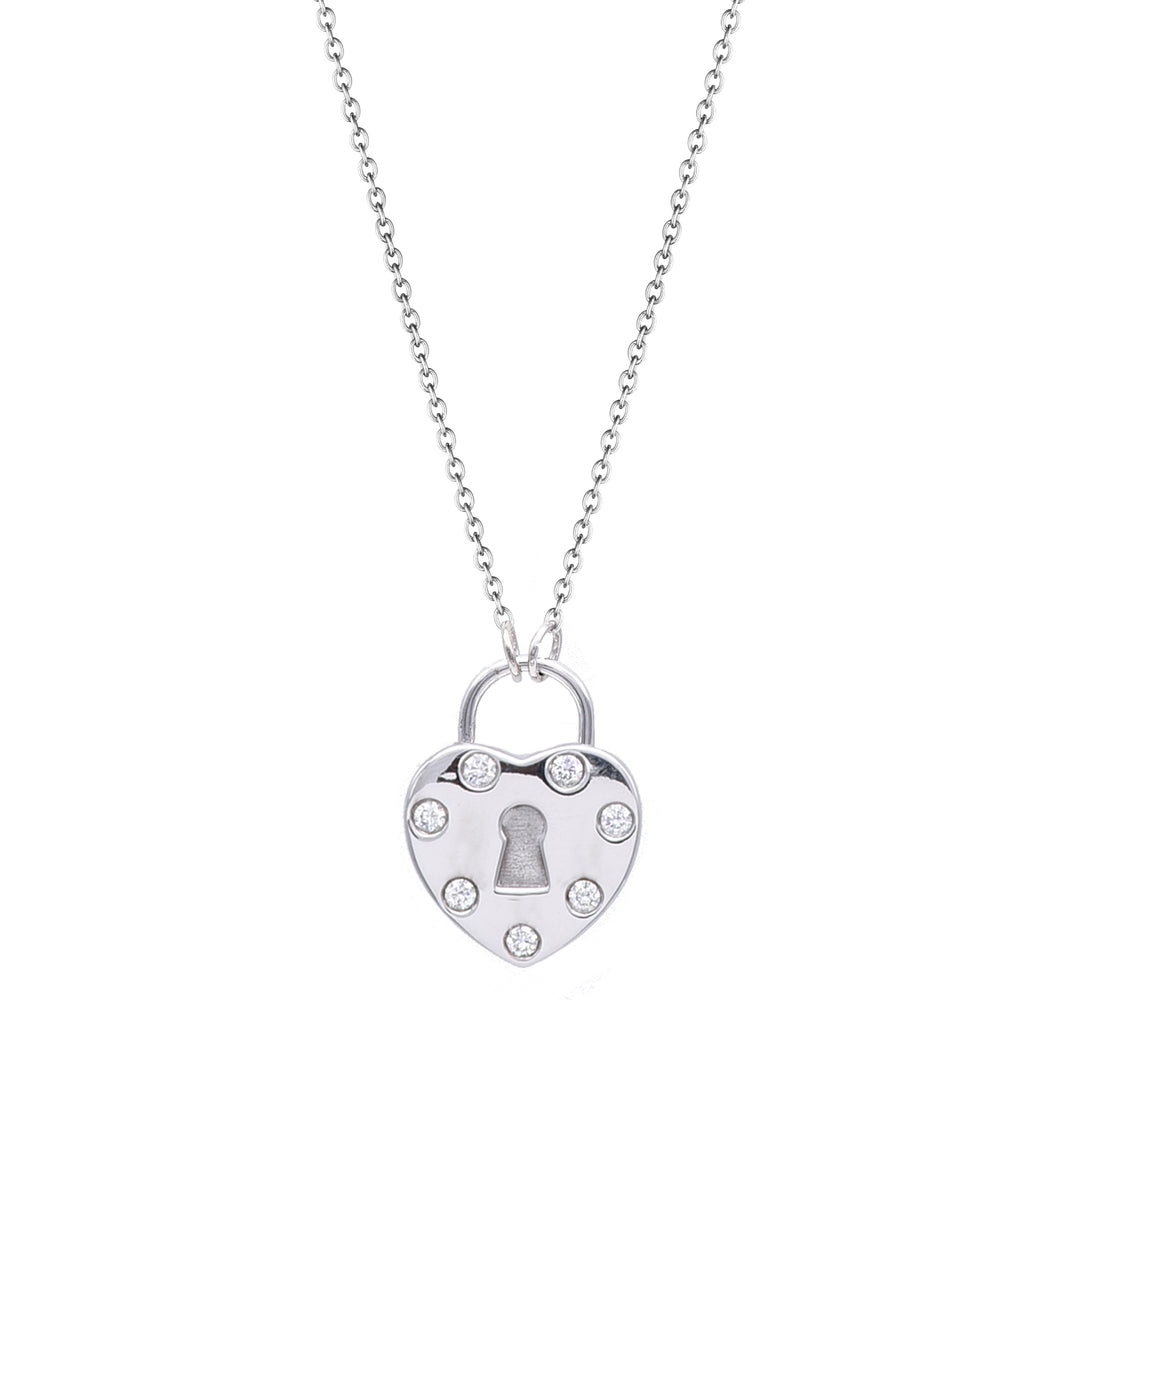 Polished Love Lock Heart Pendant